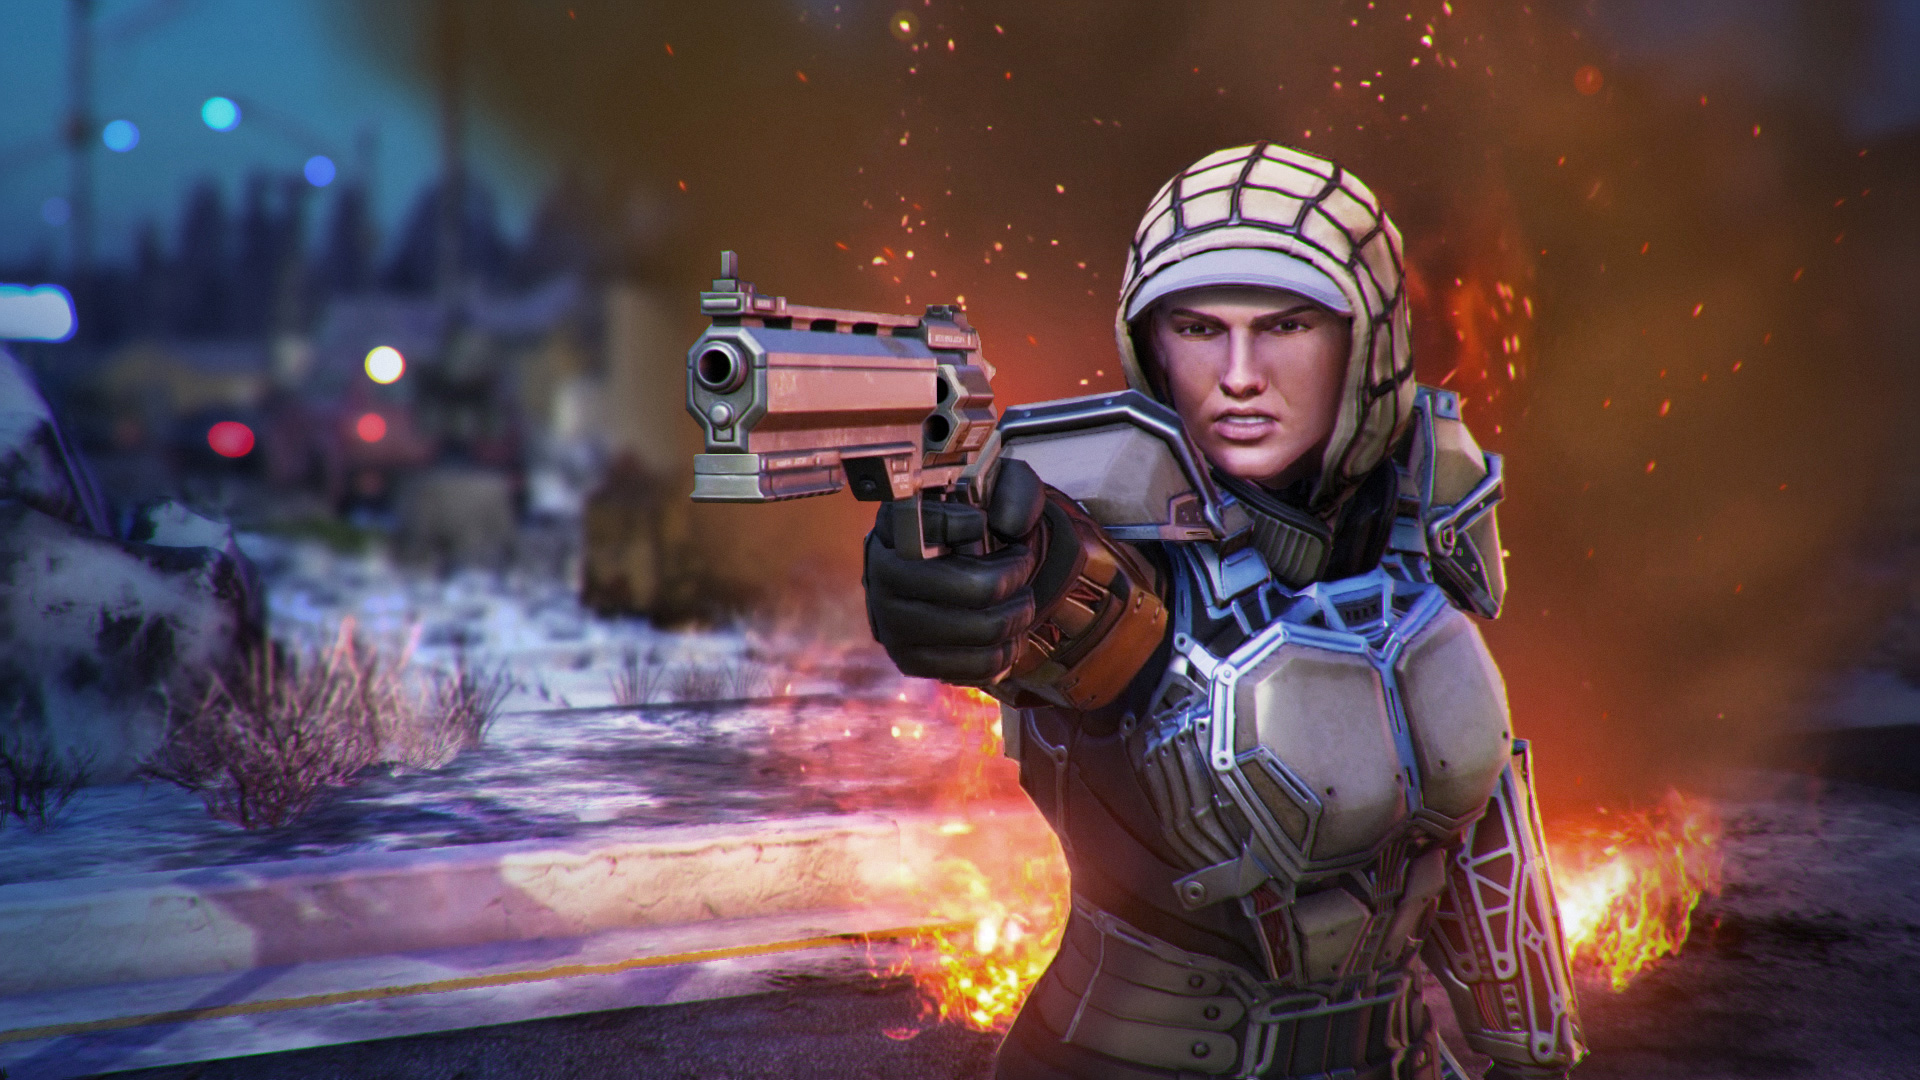 PT - XCOM 2: Digital Deluxe Edition and Reinforcement Pack Available for Pre-Purchas